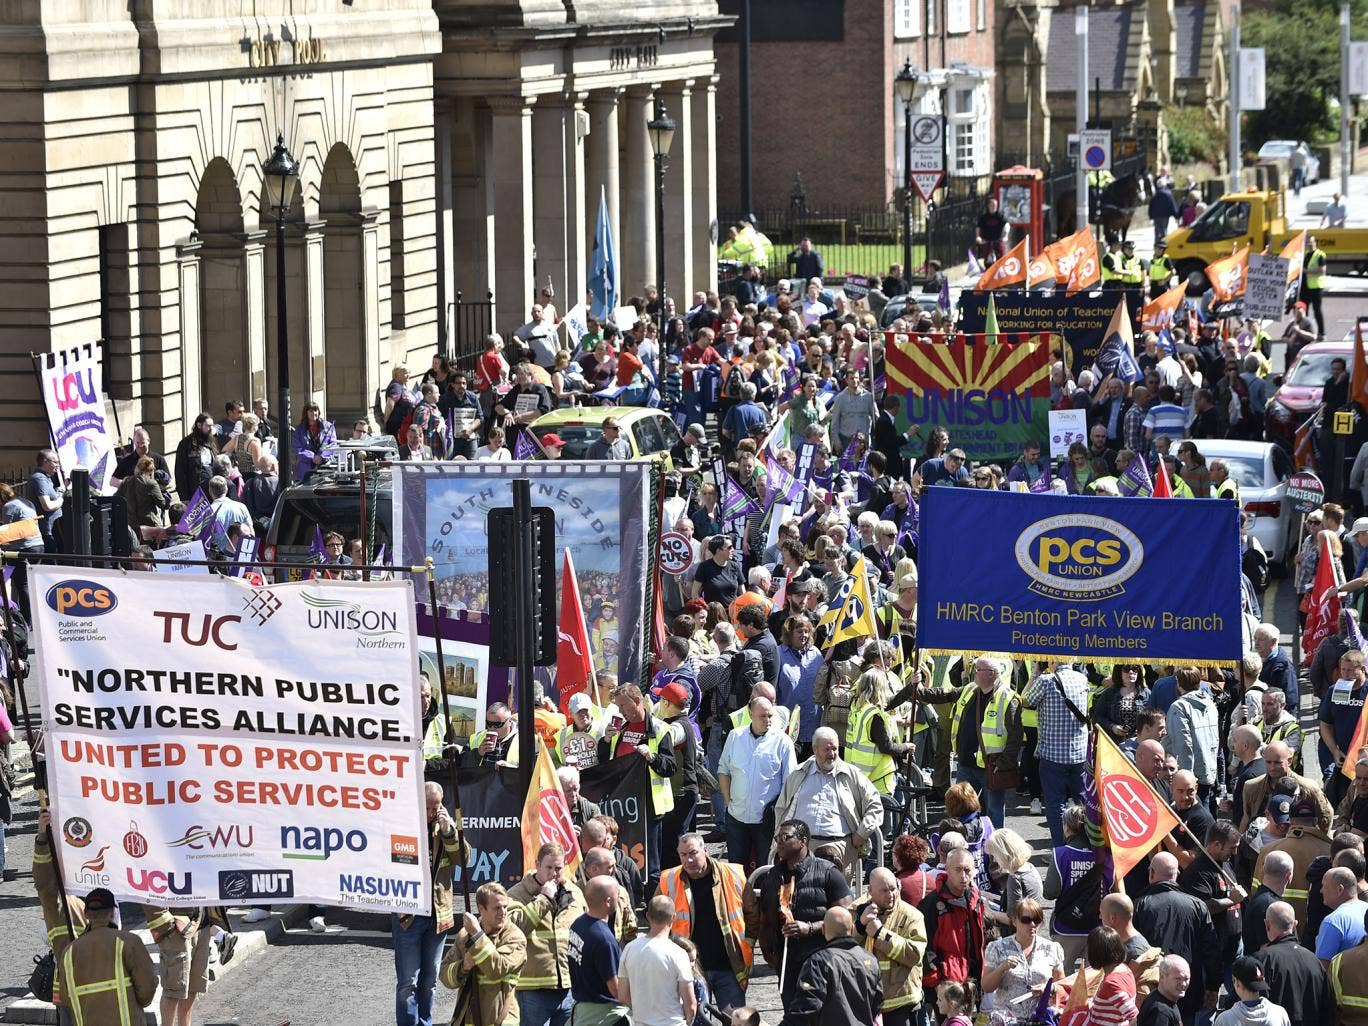 Public sector workers march through Newcastle city centre as they take part in the one-day walkout as part of bitter disputes over pay, pensions, jobs and spending cuts